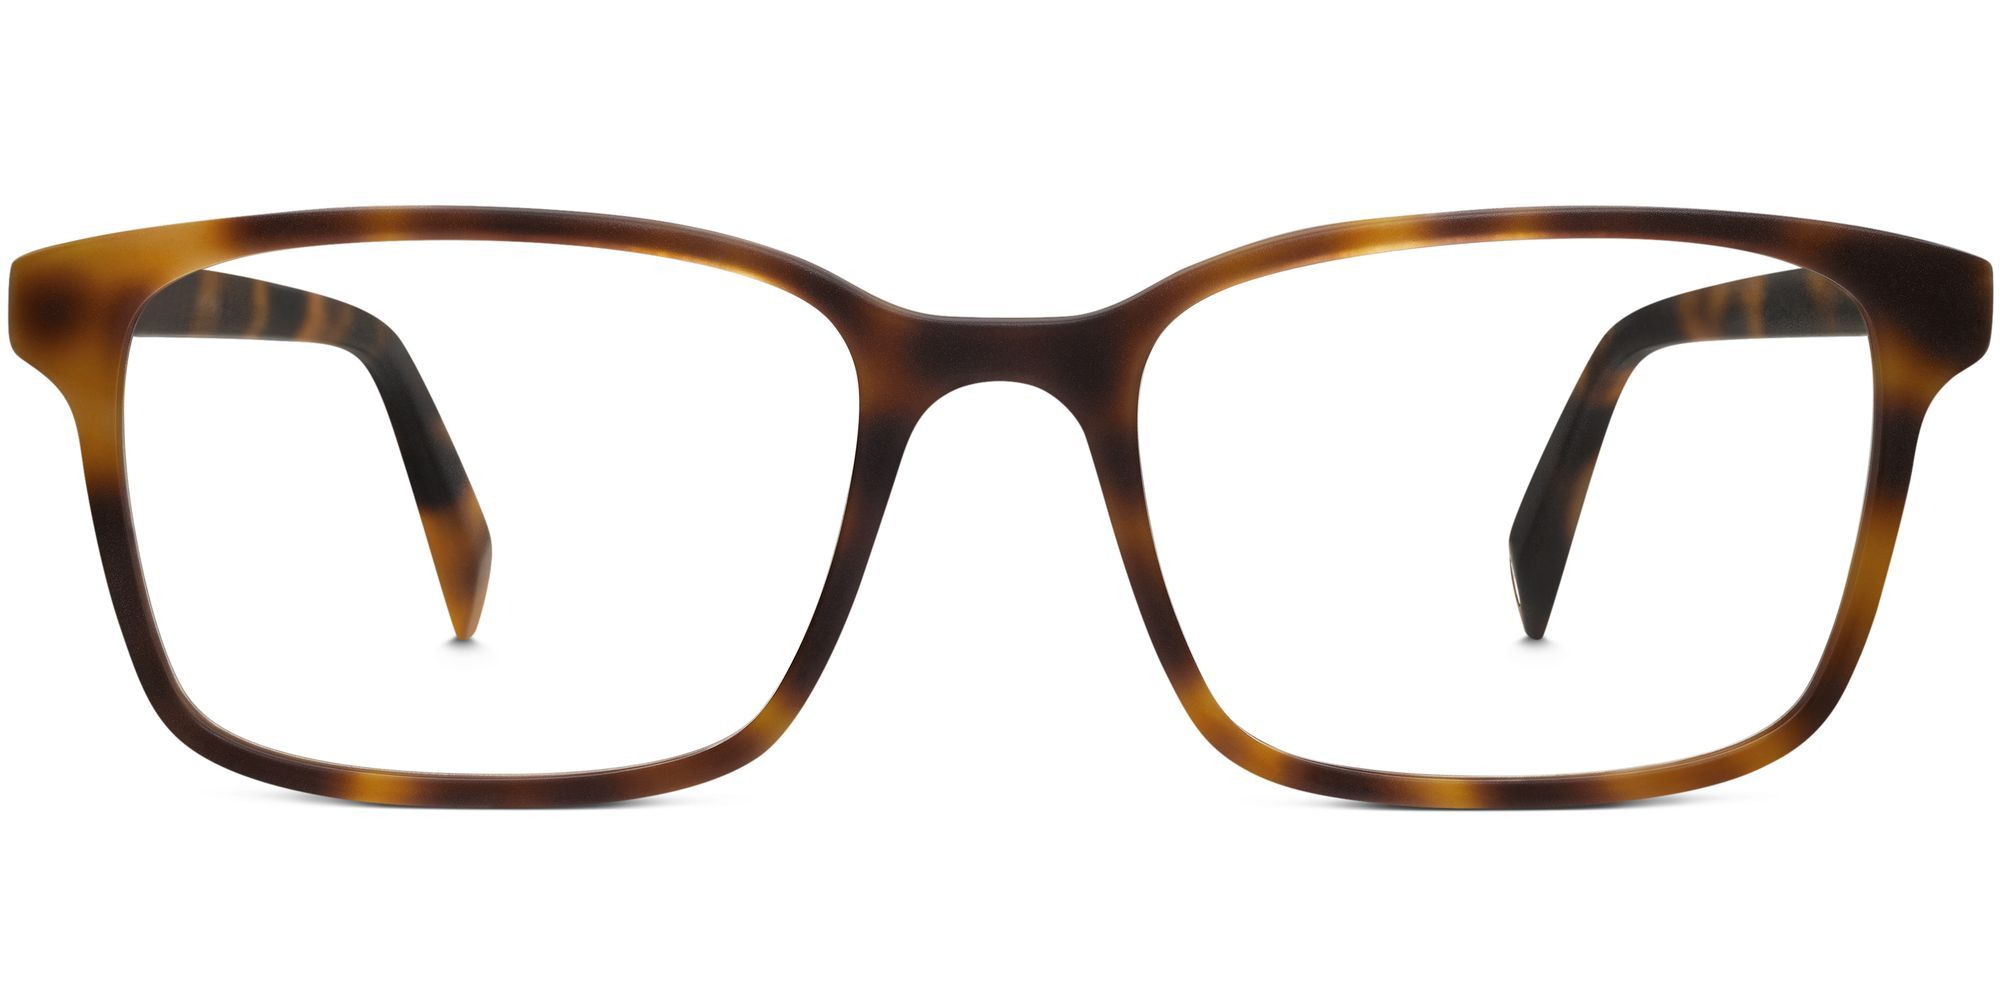 66af61887fa5 Brady Eyeglasses in Tea Rose Fade for Women. Brady s sleek lines land it  right in the middle of a Venn diagram between sensible and stylish.